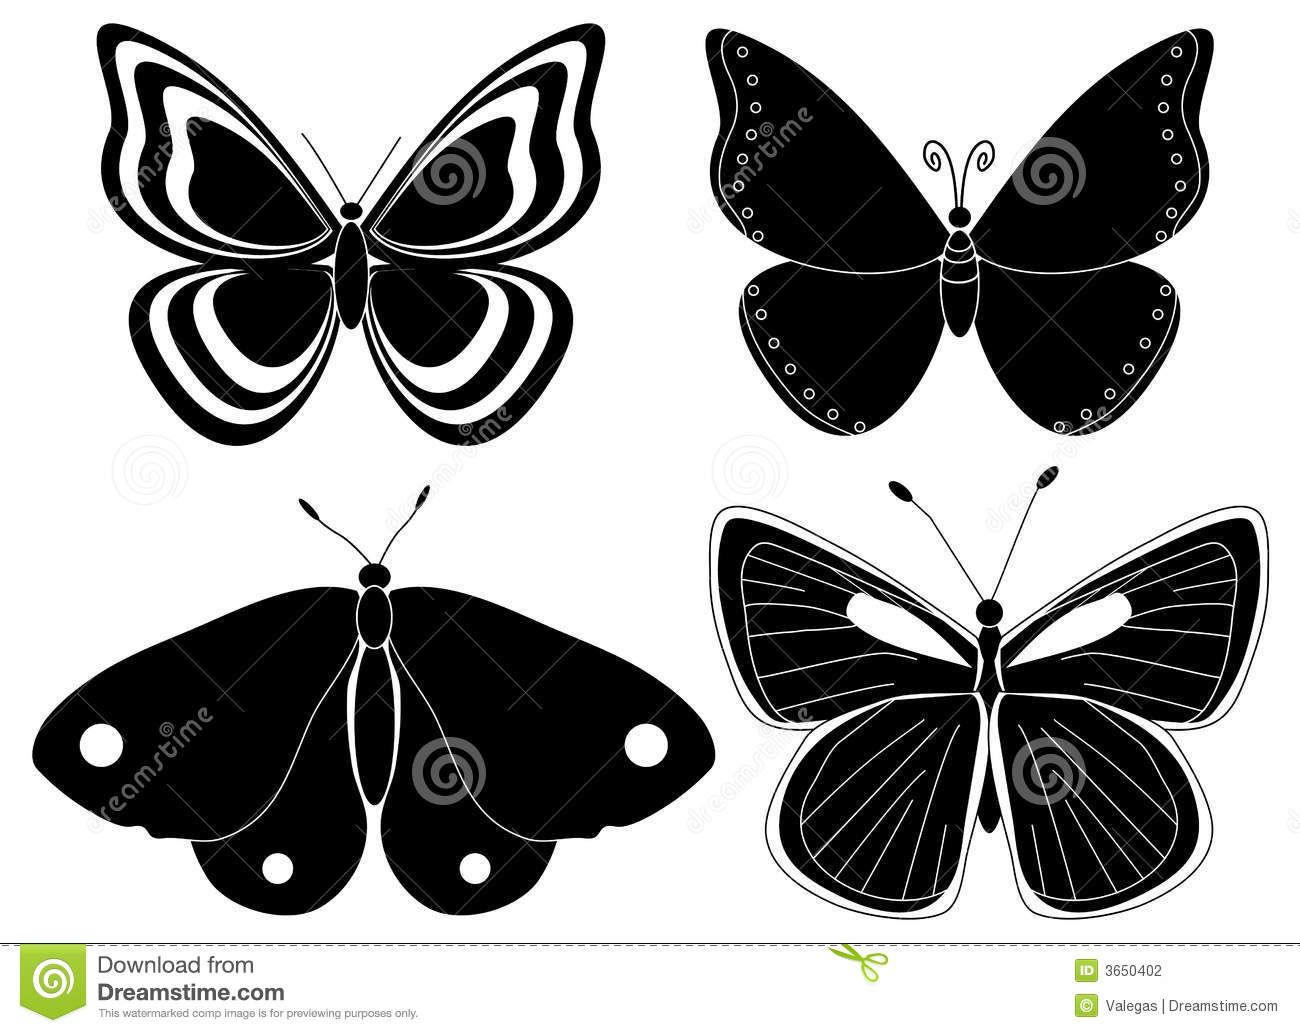 http://www.dreamstime.com/stock-photography-four-butterfly-silhouettes-image3650402